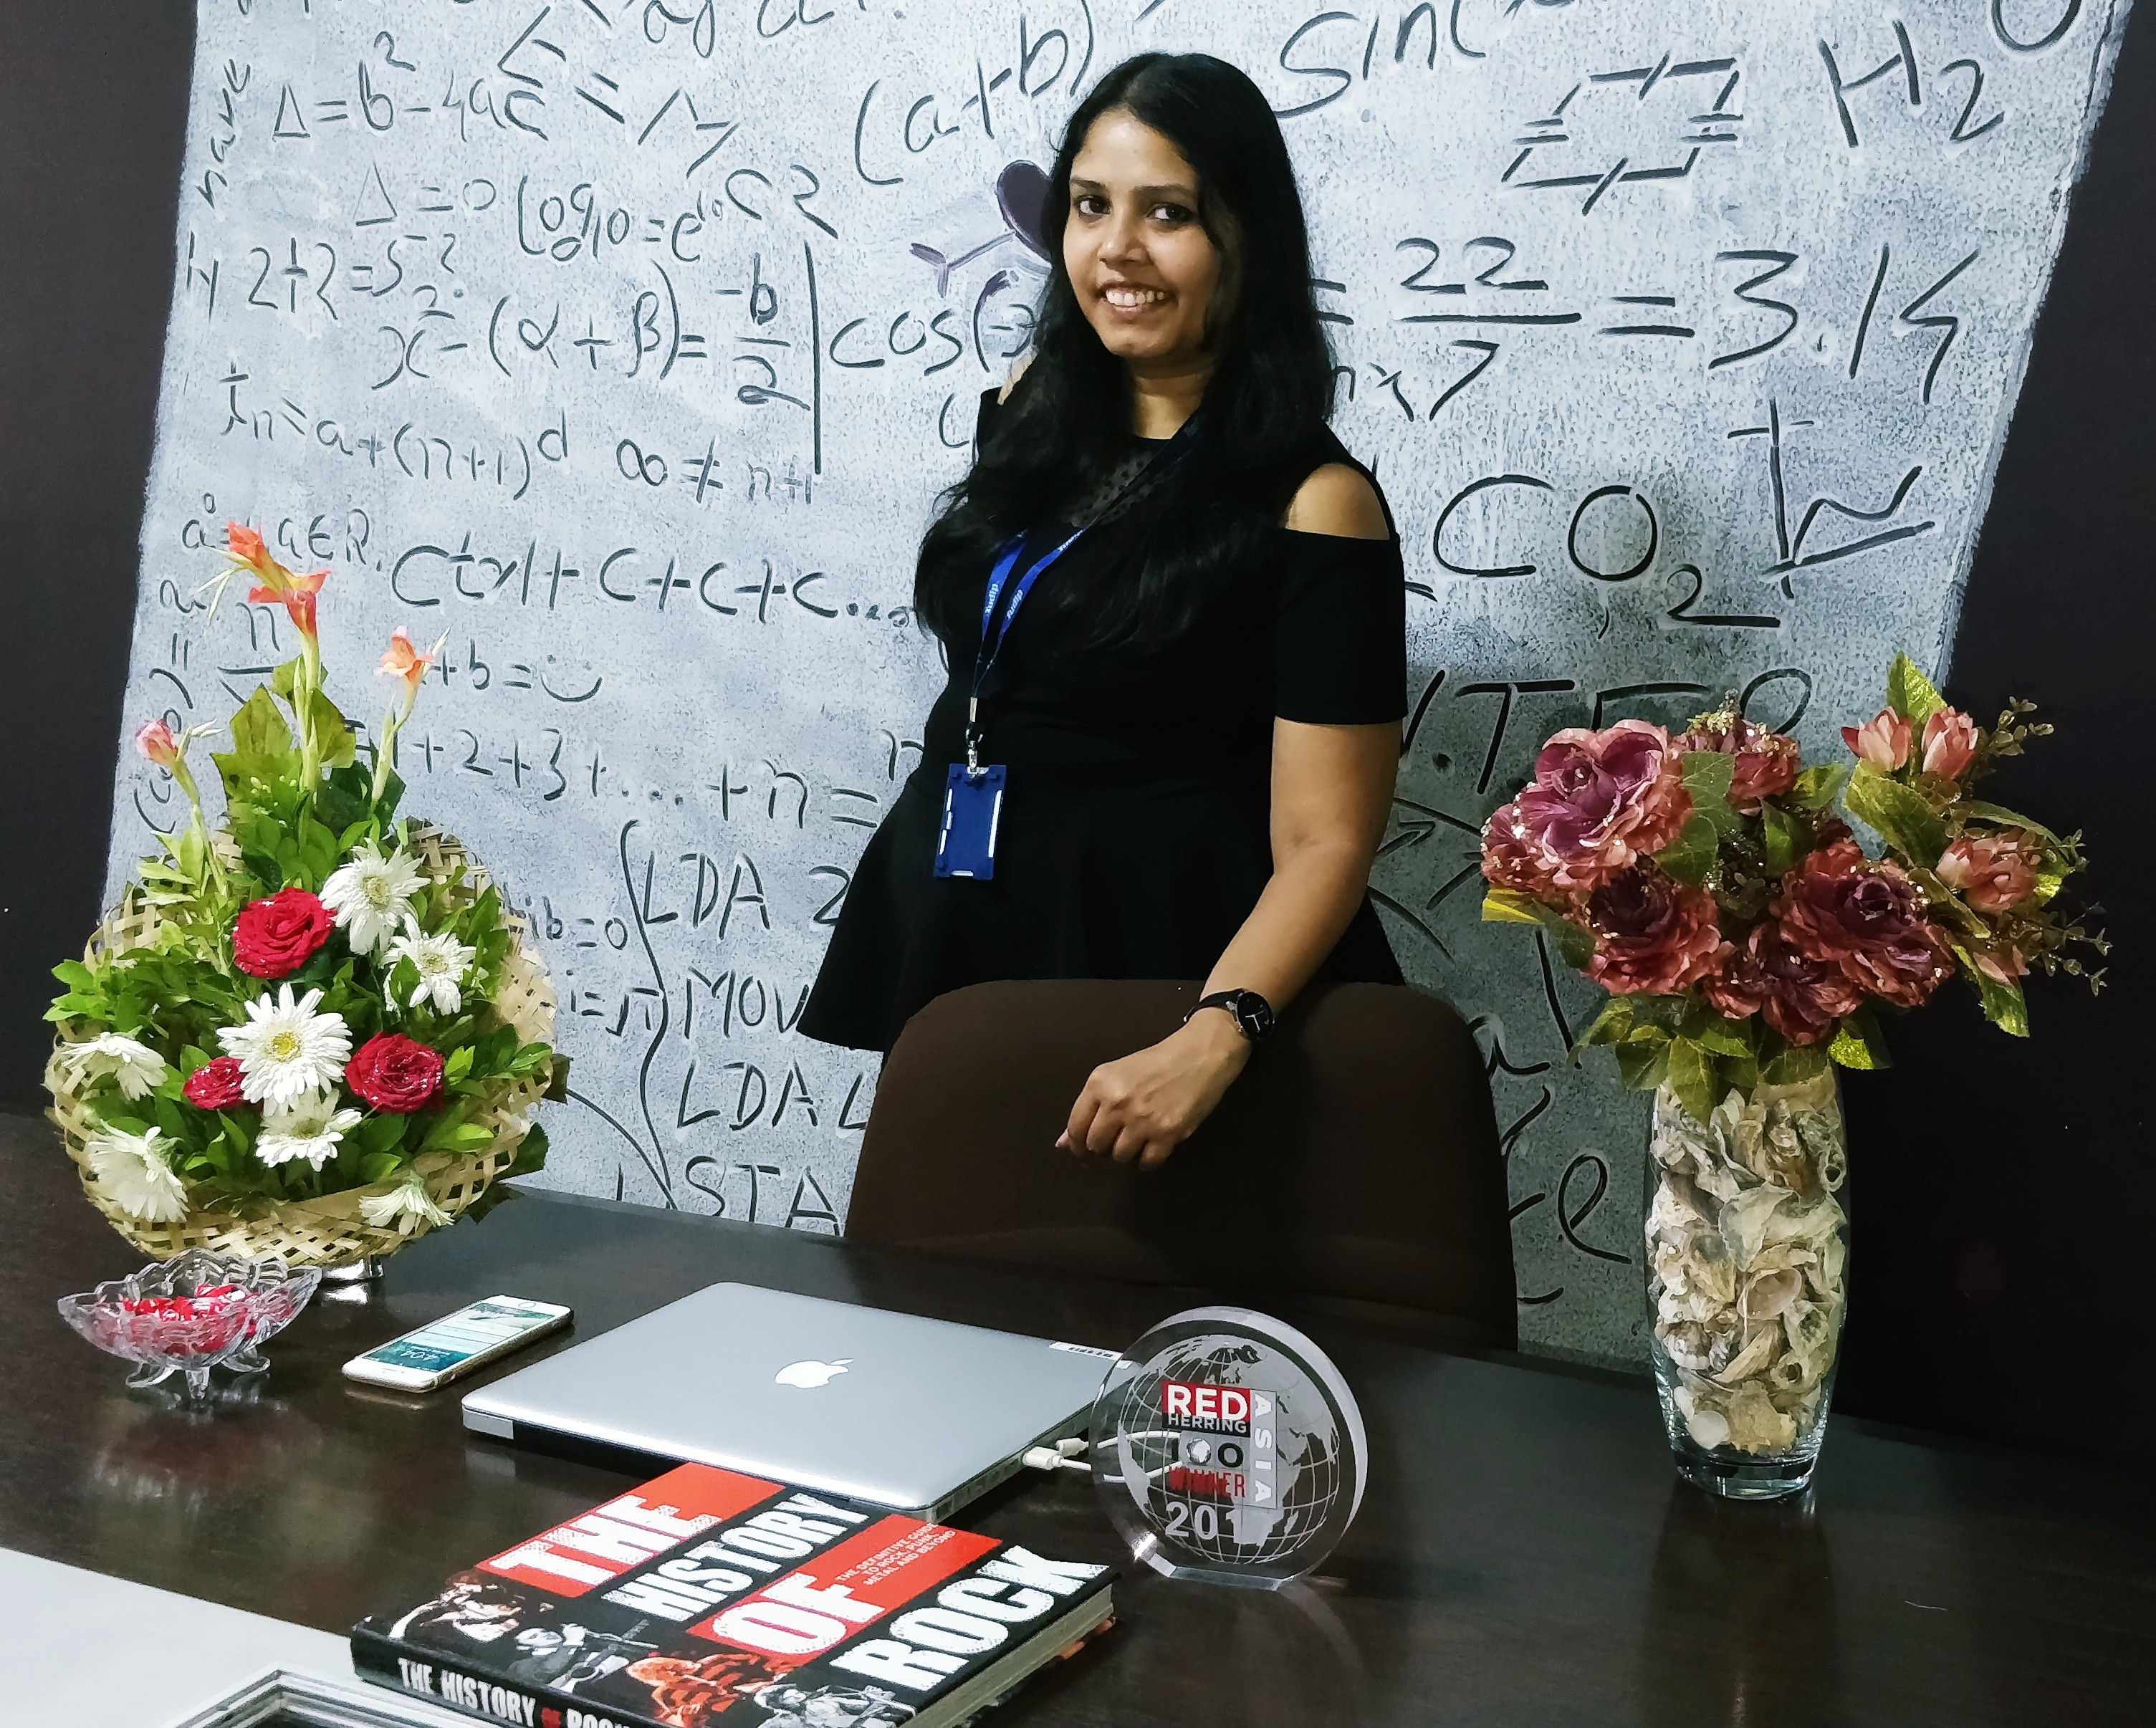 Dipti-Agrawal-The-Silicon-Review-30-Entrepreneurs